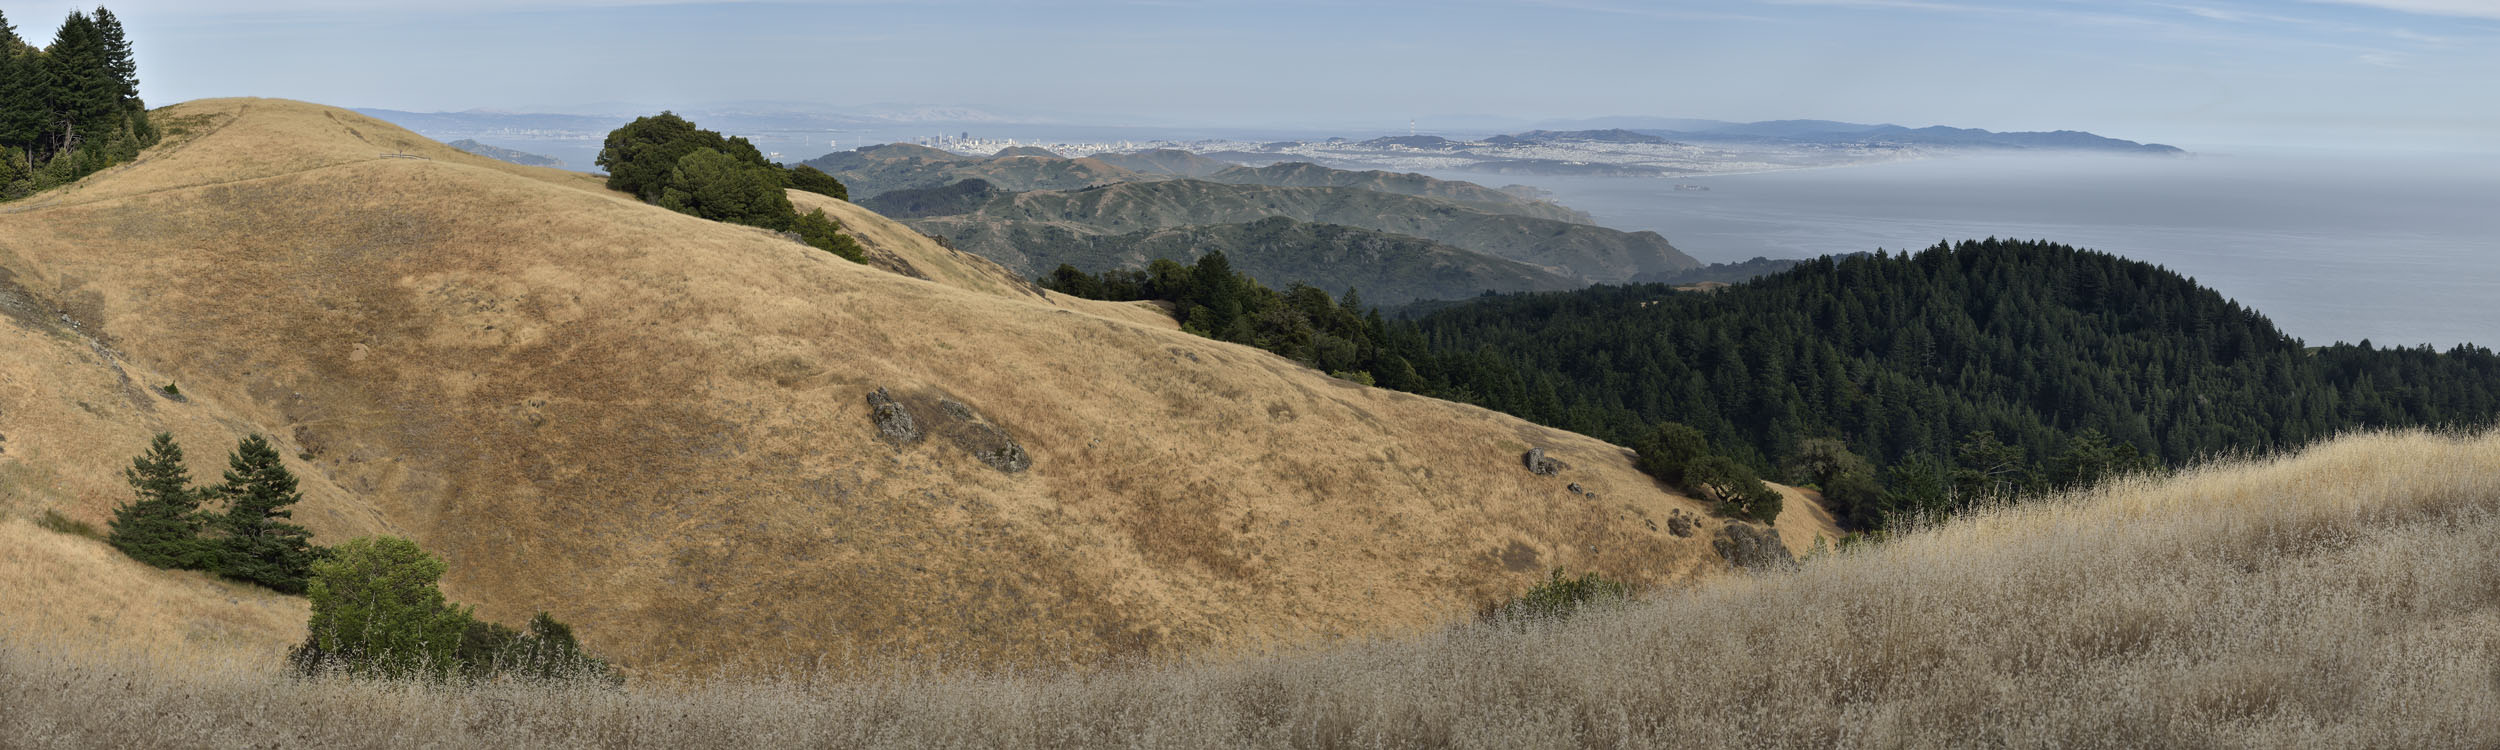 Mt. Tamalpias Foothills, CA